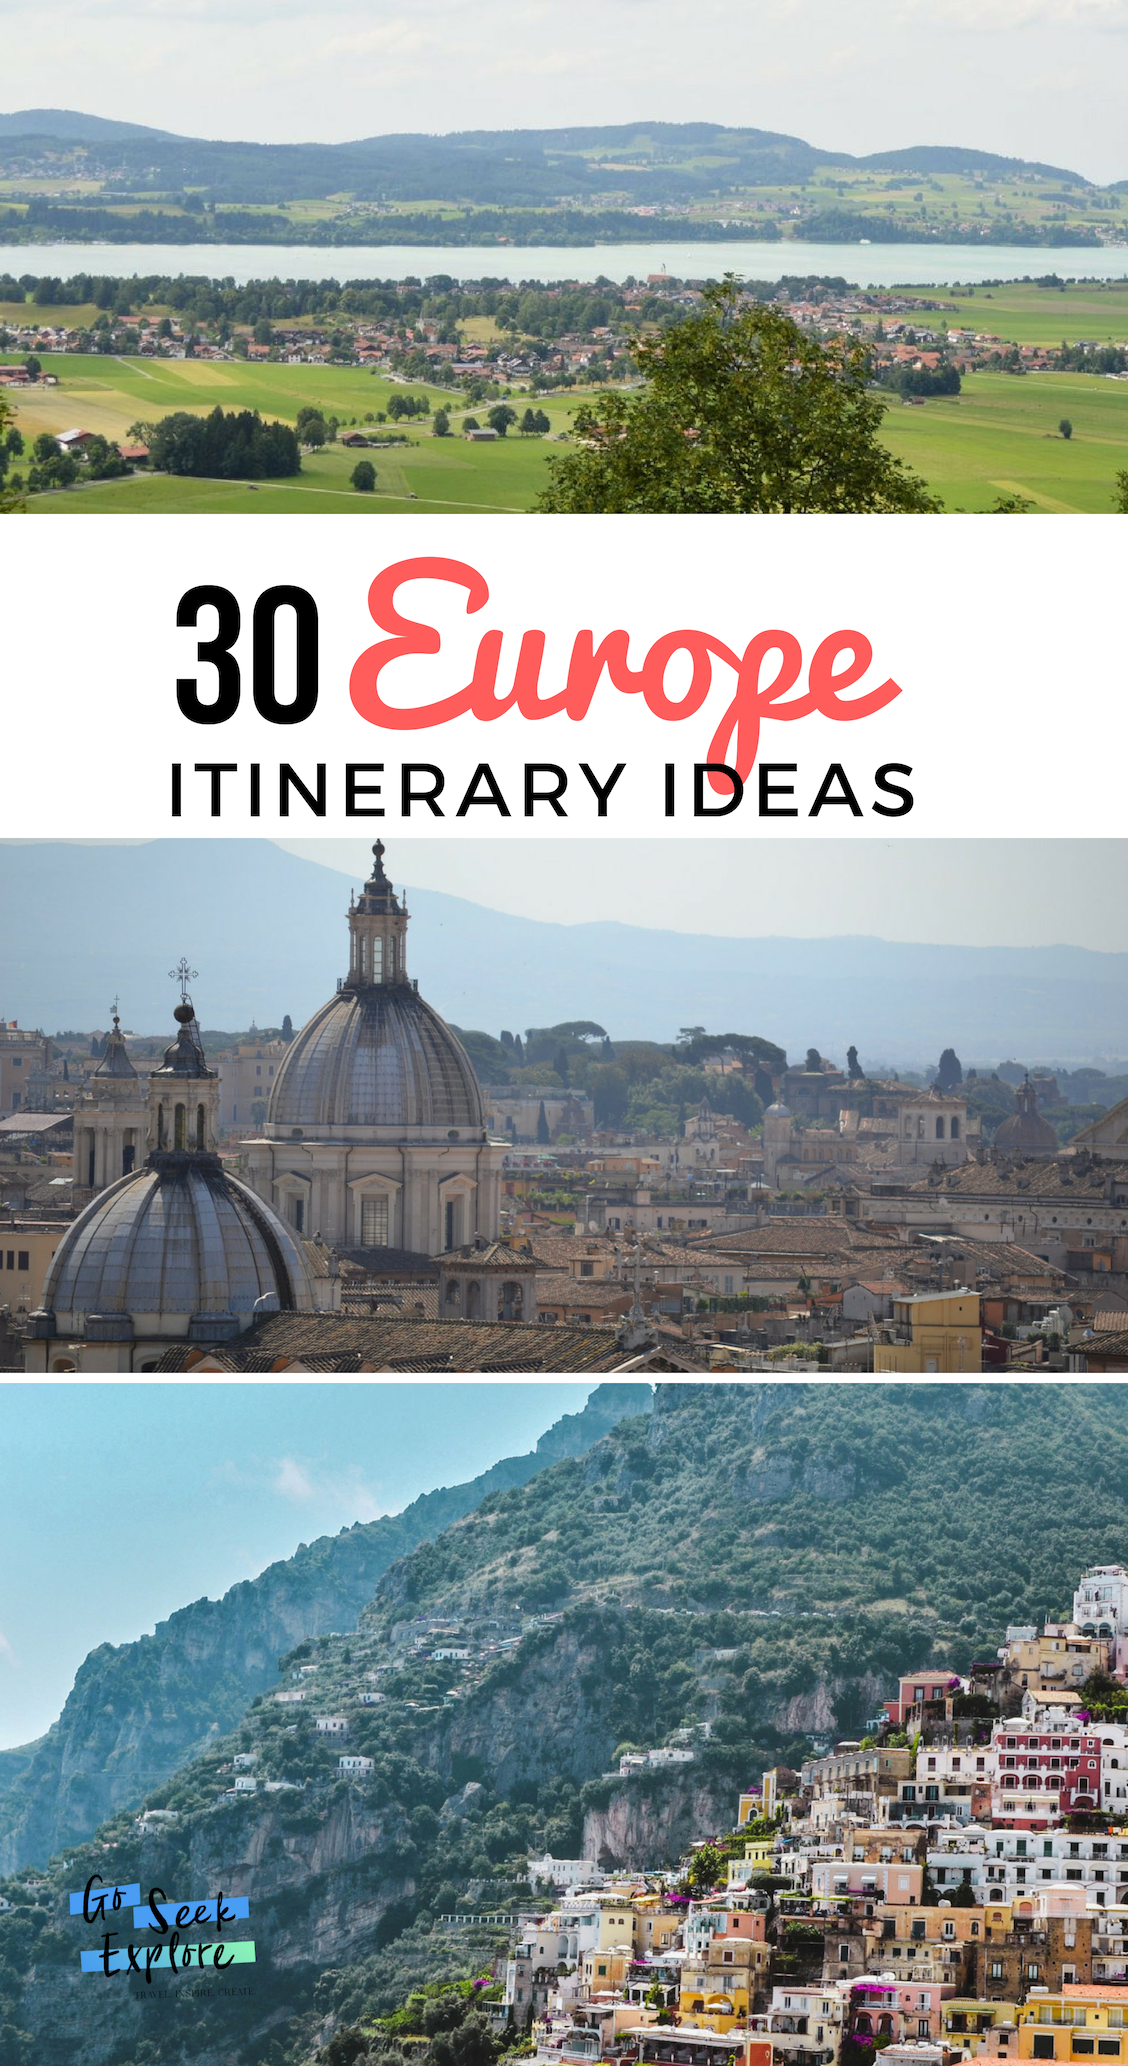 This is a great list of 30 Europe itinerary ideas - great for those traveling to Europe for the first time! This list is split up by region (Western Europe, Eastern Europe, Mediterranean, etc.) ranging from simpler itineraries to longer ones! / goseekexplore.com